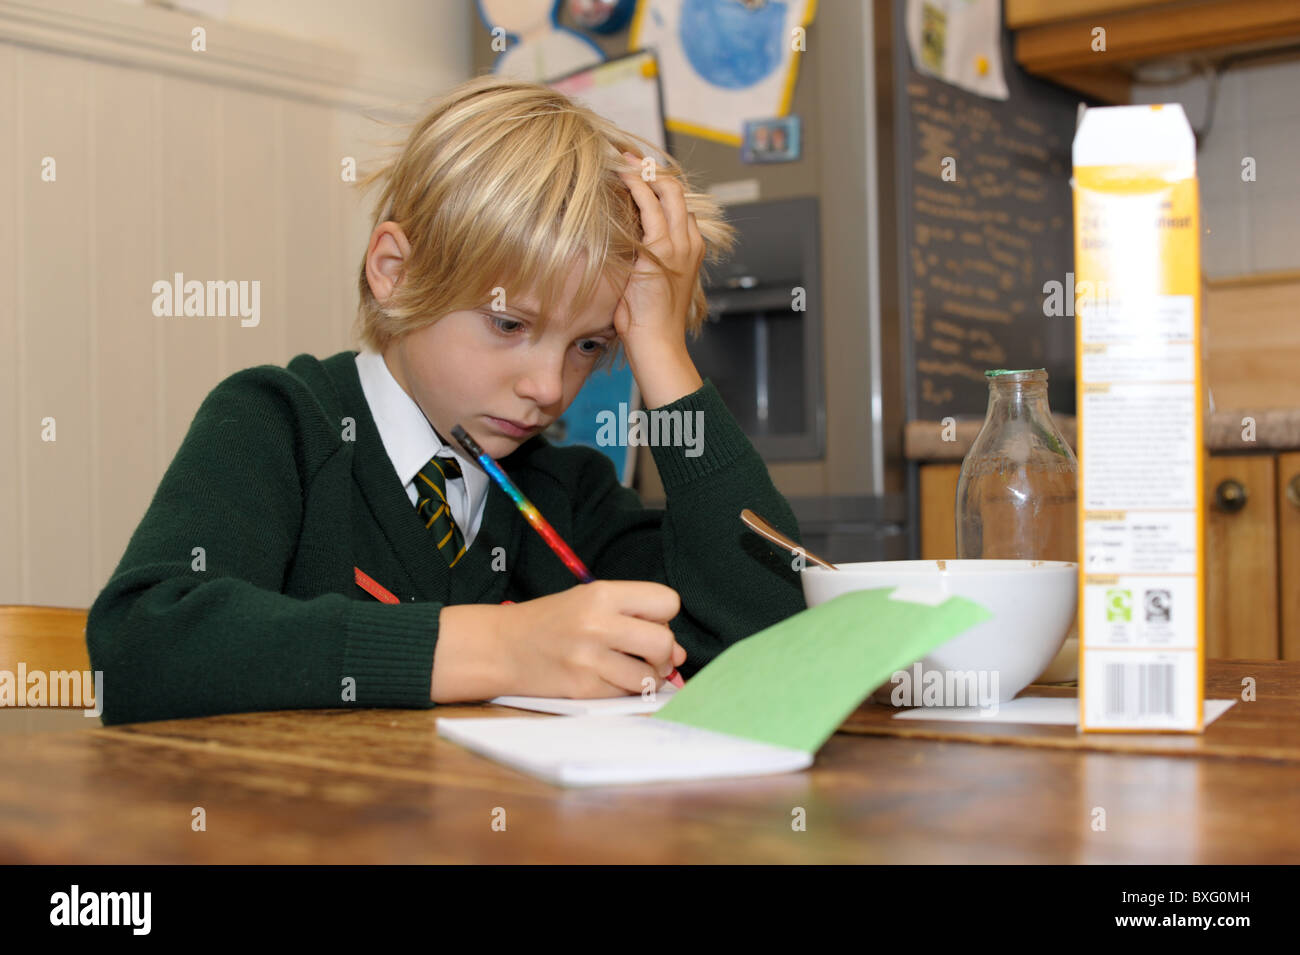 young boy in a green school uniform concentrates on his homework